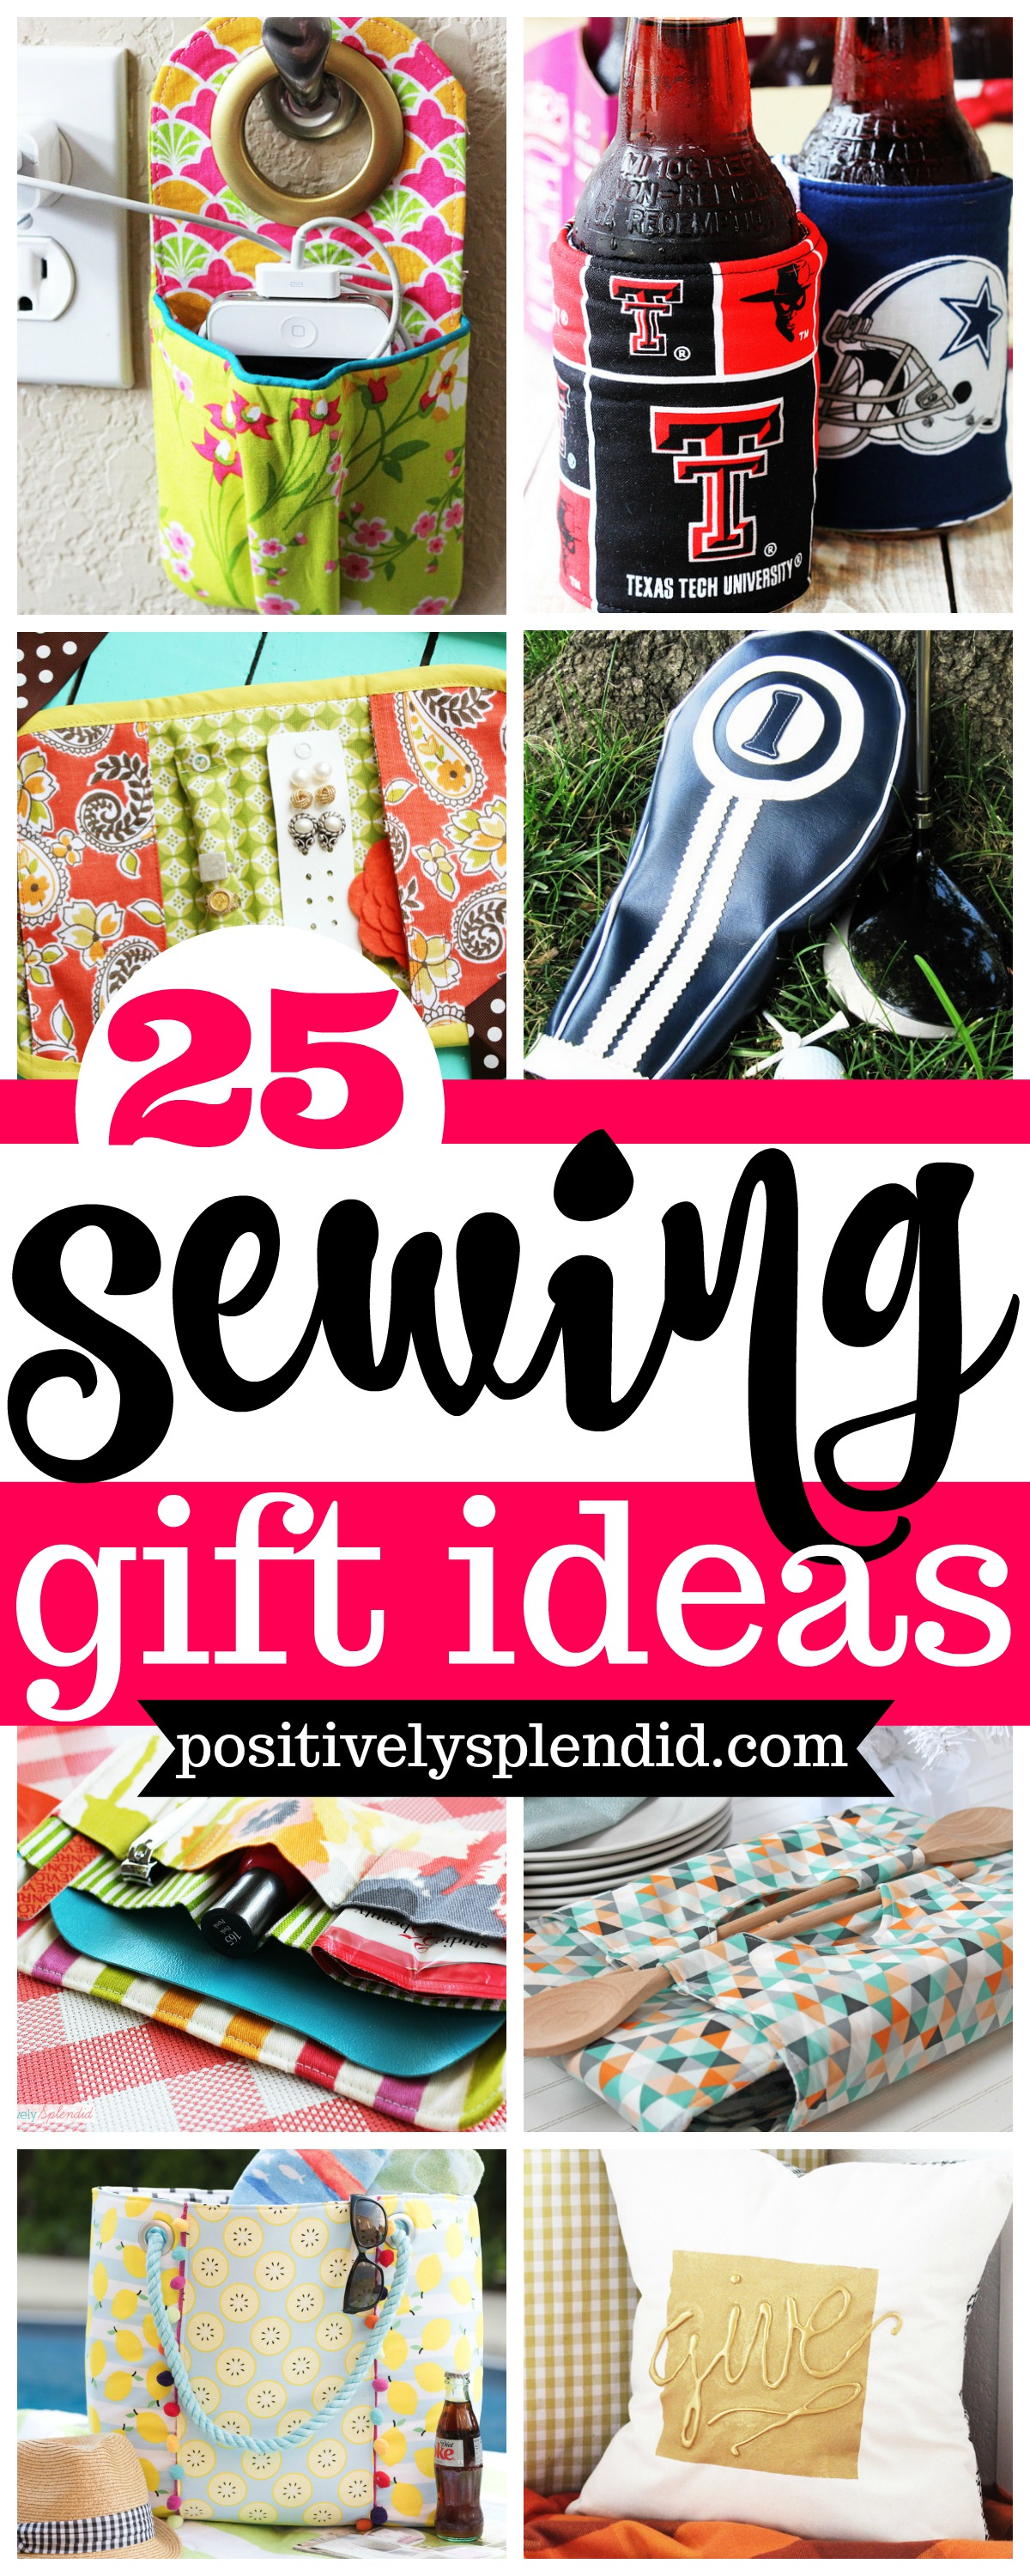 The Ultimate Guide for Sewing Gifts: 25 Great Ideas!